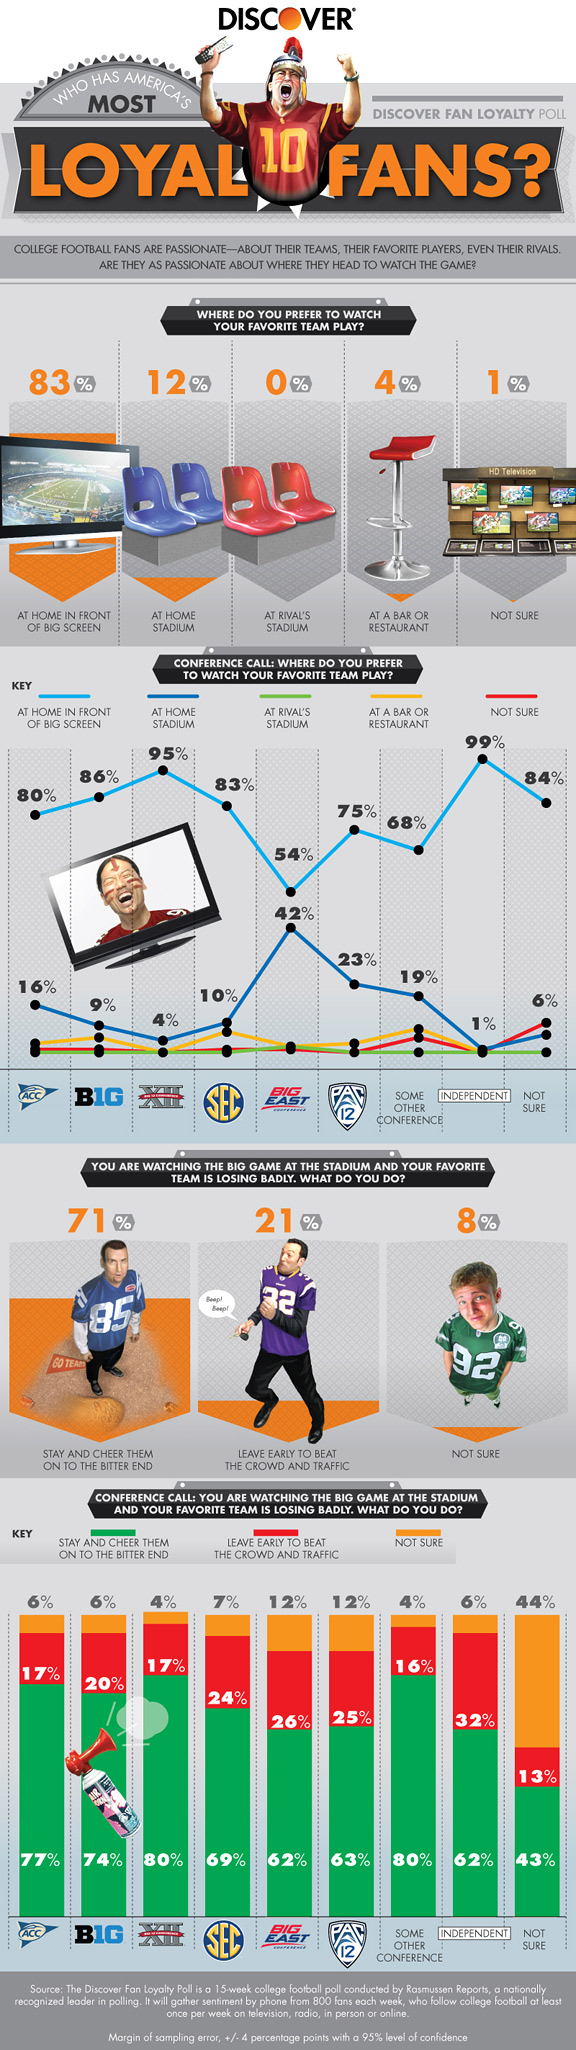 Infographic on college football fan preferences